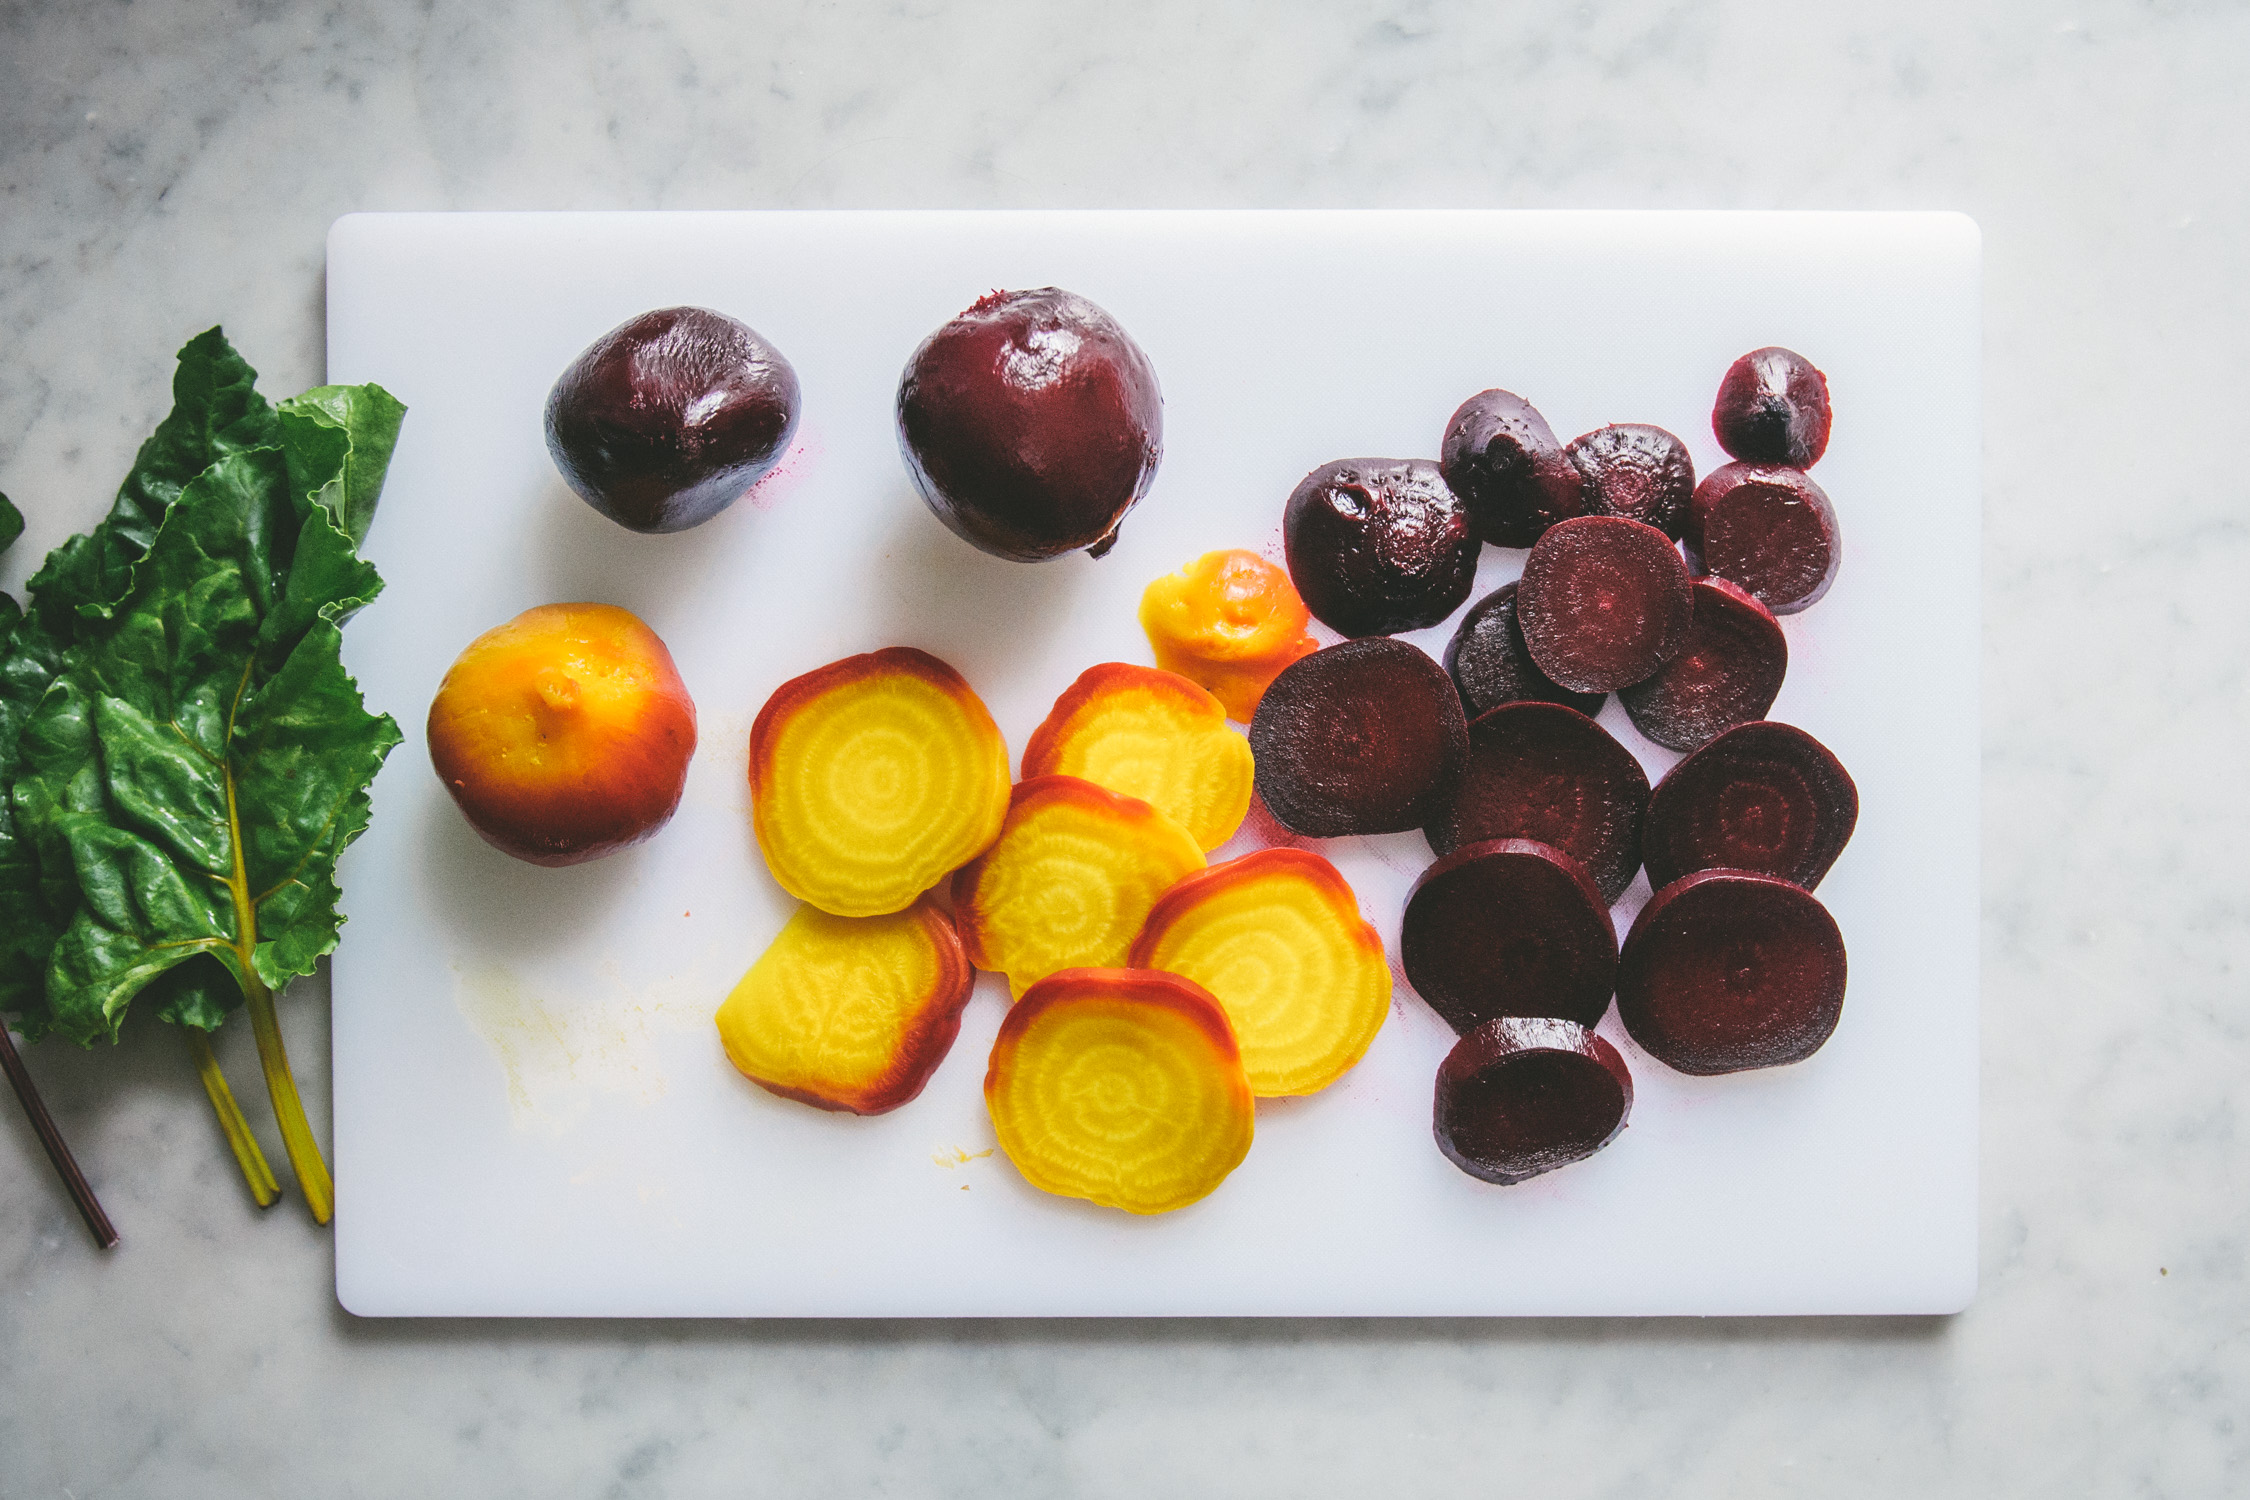 Roasted Beets with Pistachio Vinaigrette | O&O Eats